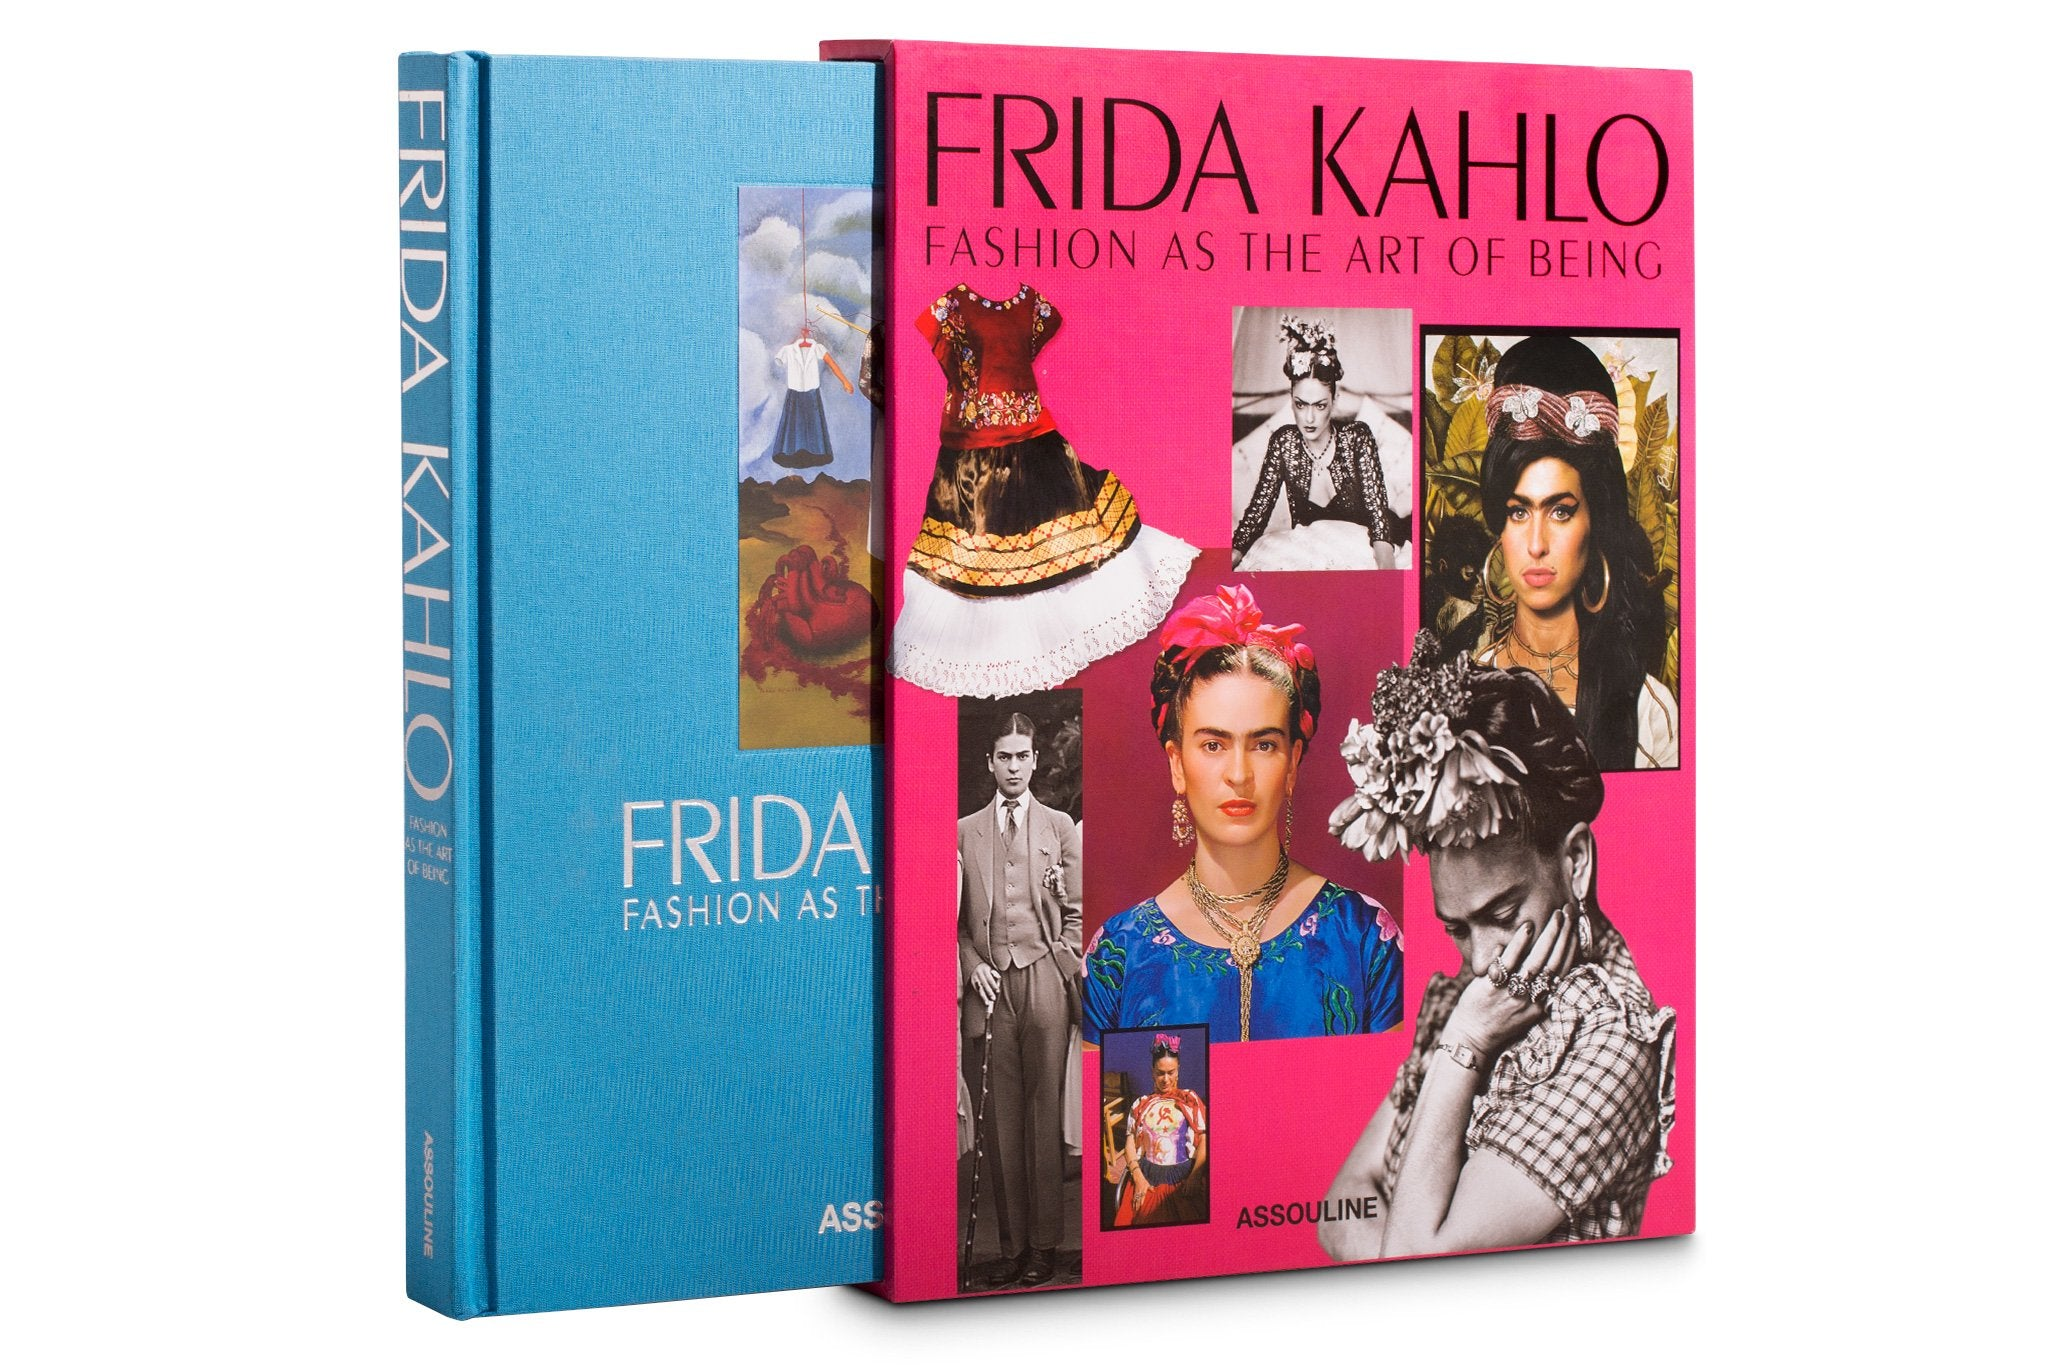 Frida Kahlo: Fashion as the Art of Being - Assouline